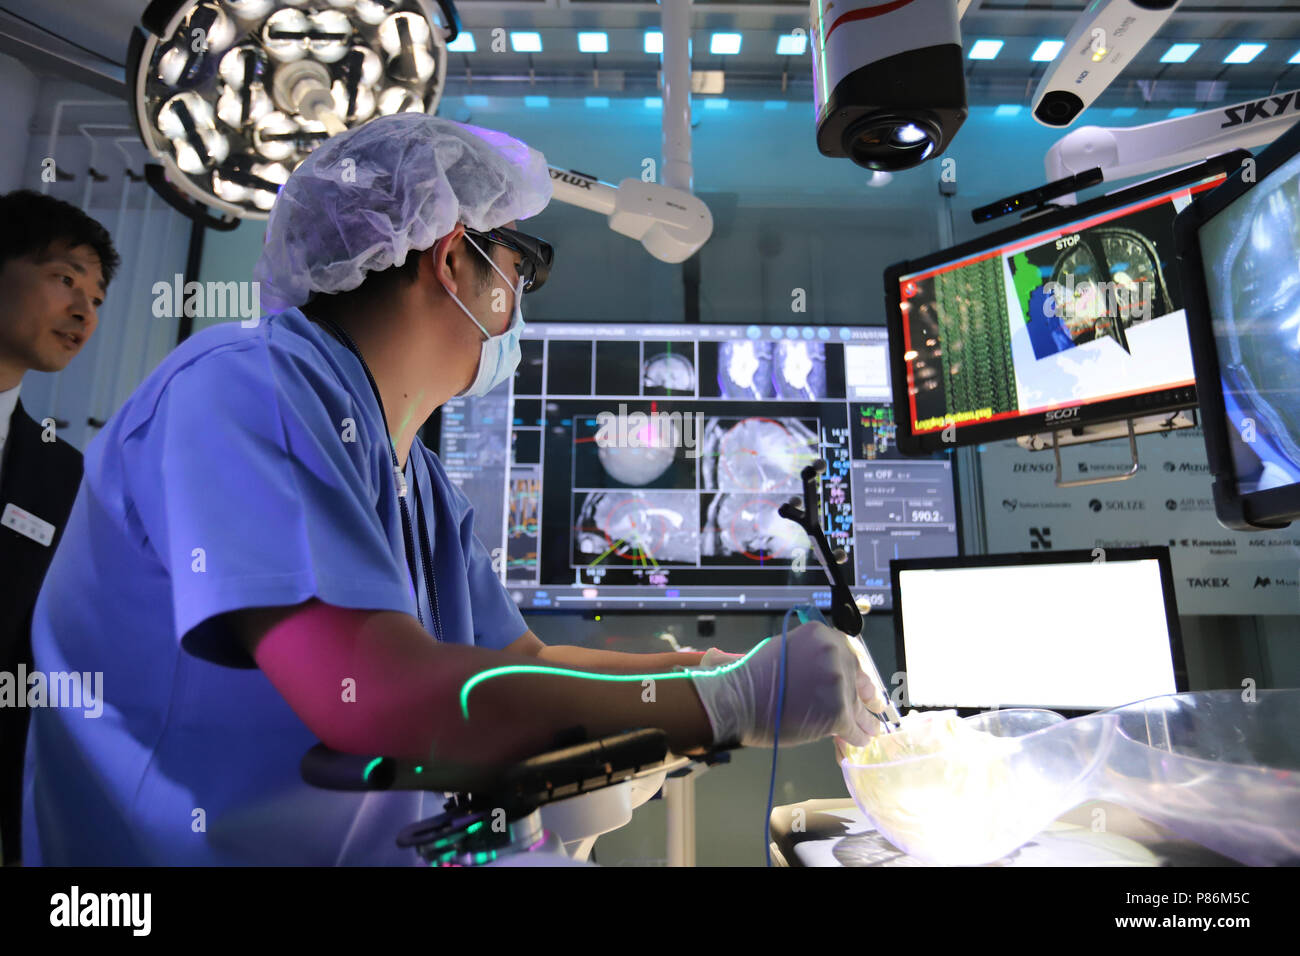 """Tokyo, Japan. 9th July, 2018. A brain surgeon checks monitors and demonstrates the prototype model of the smart surgery room """"Super Cyber operating Theater (SCOT)"""" at a laboratory of the Tokyo Women's Medical University (TWMU) in Tokyo on Monday, July 9, 2018. TWMU, Shinshu University and Japanese electriocs companies such as Denso and Hitachi developed the smart surgery room where all electronics devices such as MRI, operating microscope, electrosurgical knife and communication devices are linked by Denso's OPeLINK system. Credit: Yoshio Tsunoda/AFLO/Alamy Live News Stock Photo"""